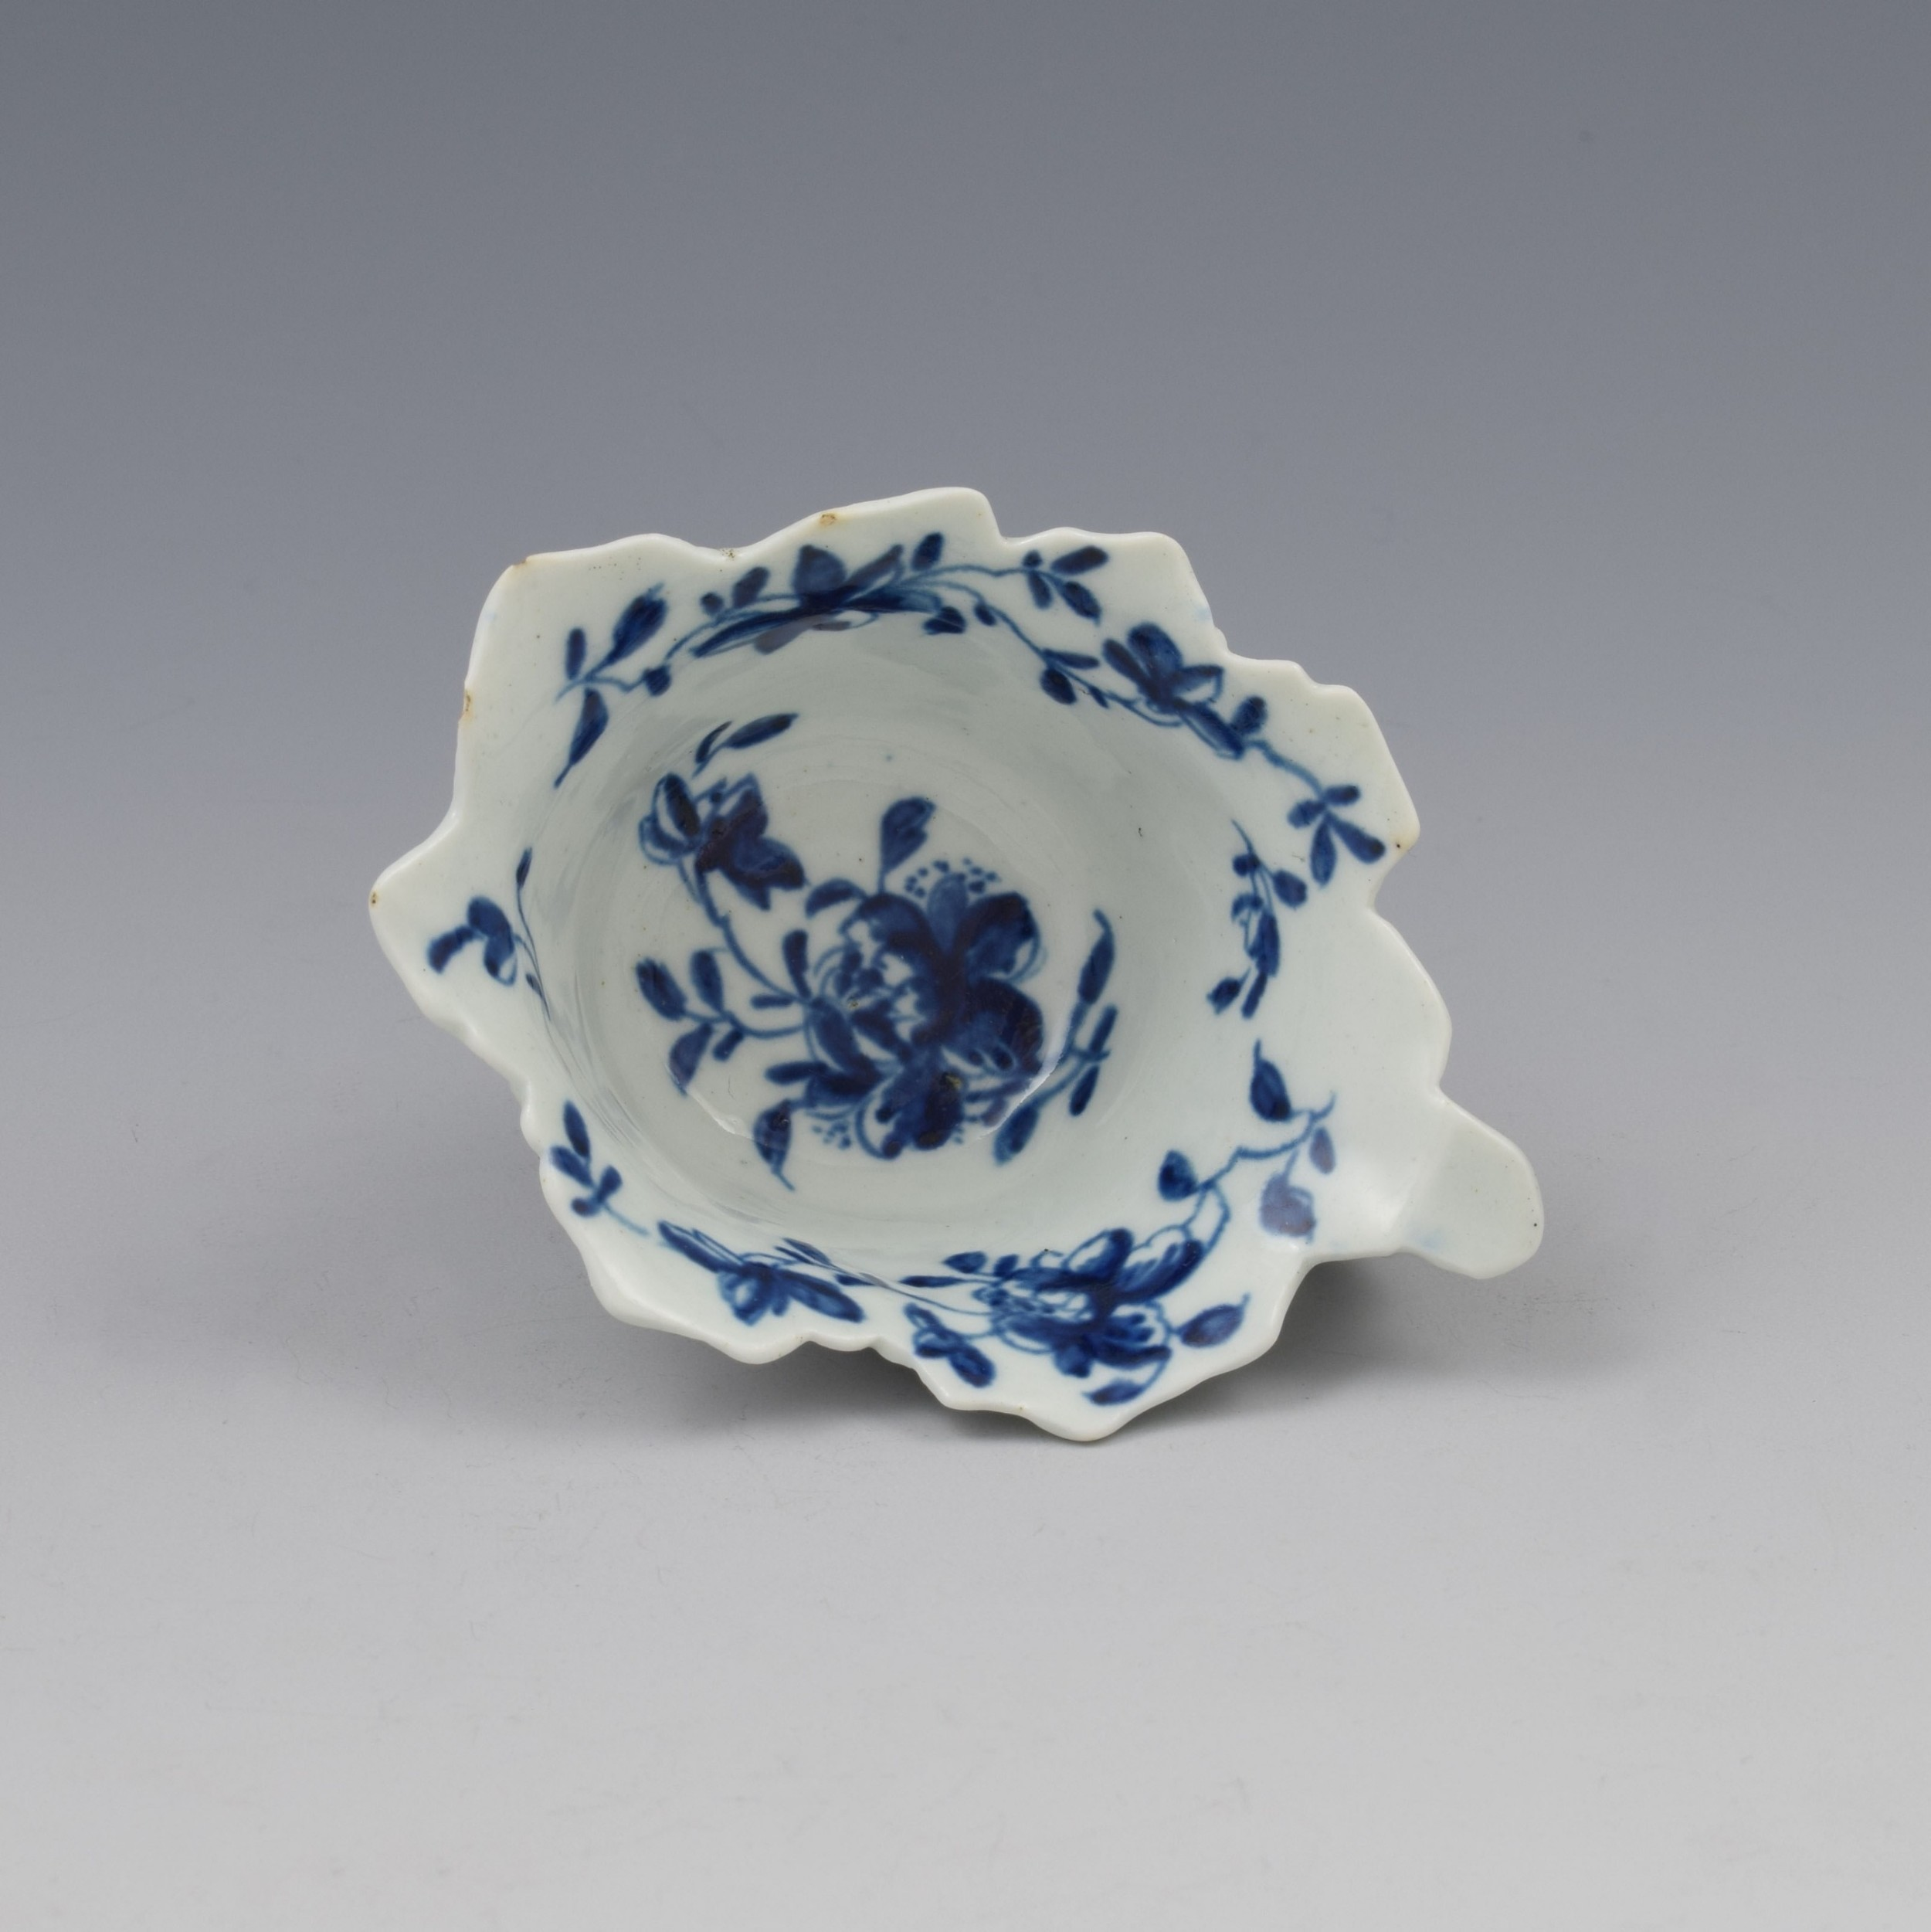 first period worcester porcelain mansfield butter boat c1758